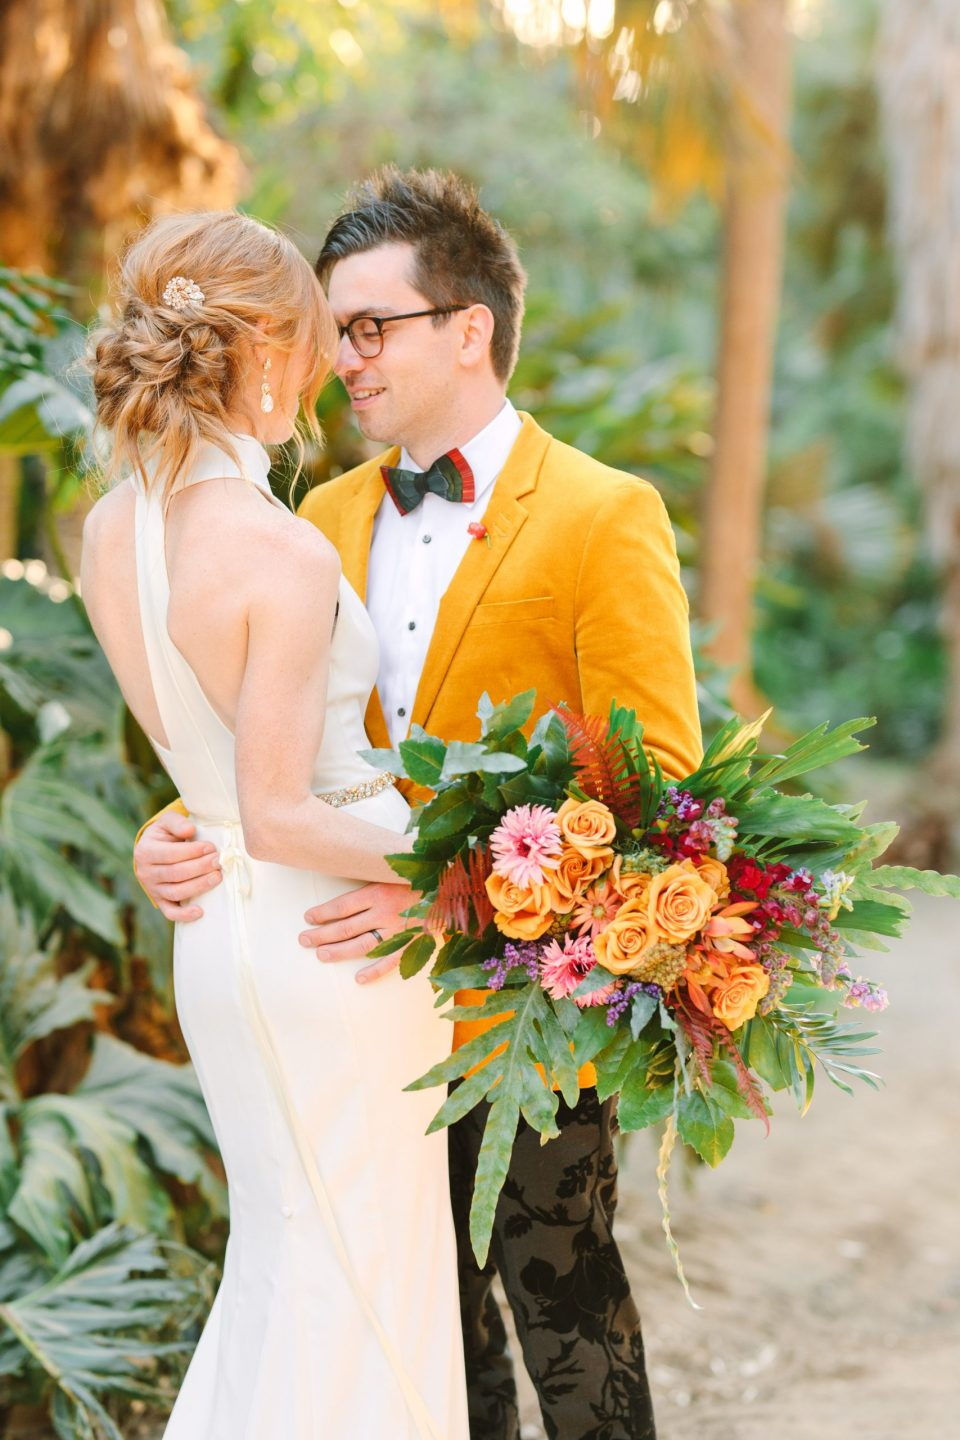 Groom in yellow blazer wedding portrait at Balboa Park in San Diego by Mary Costa Photography